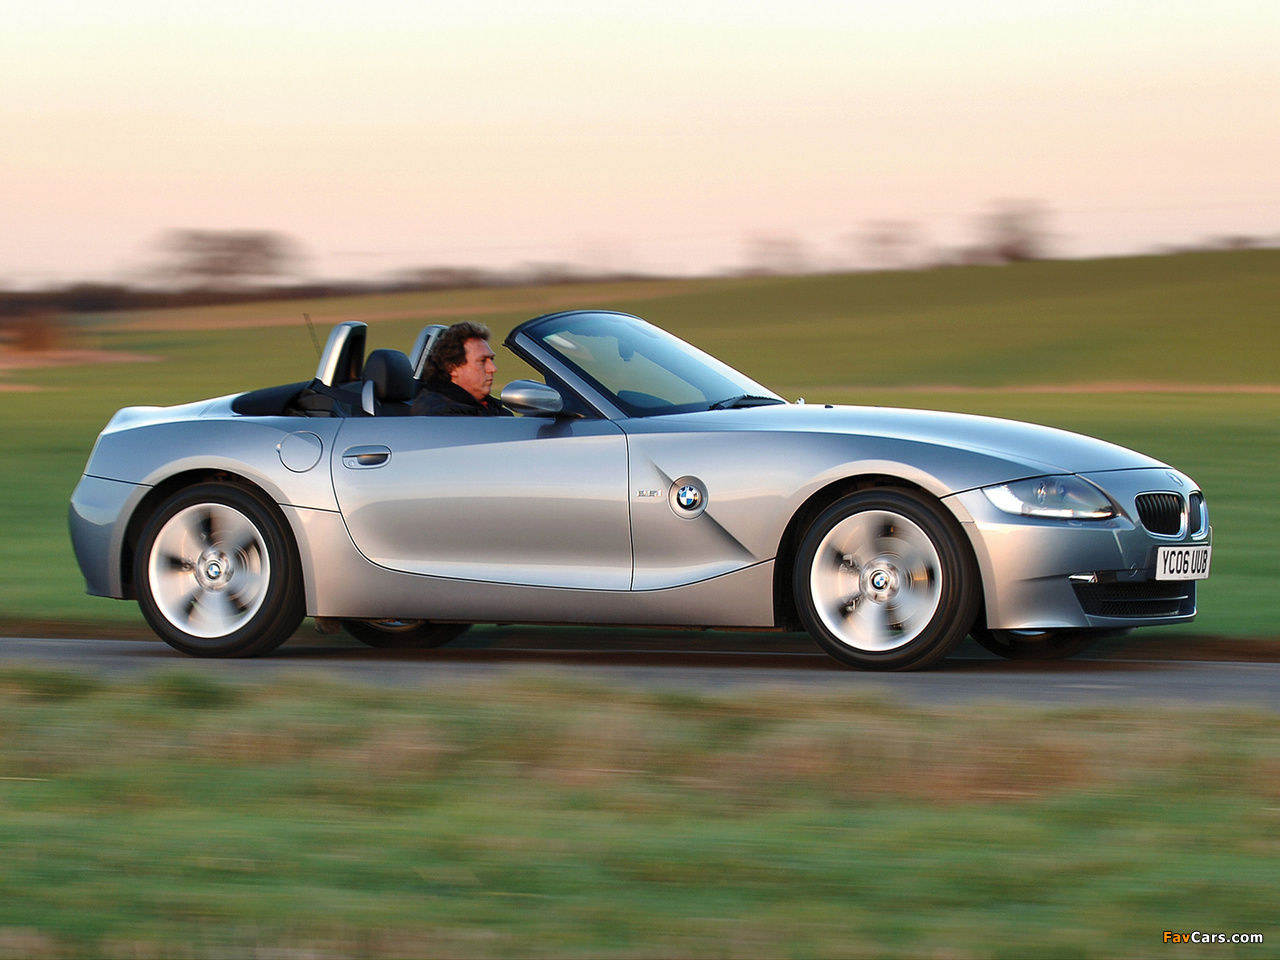 Bmw Z4 Information File Bmw Z4 Ii Front 2 20100329 Jpg